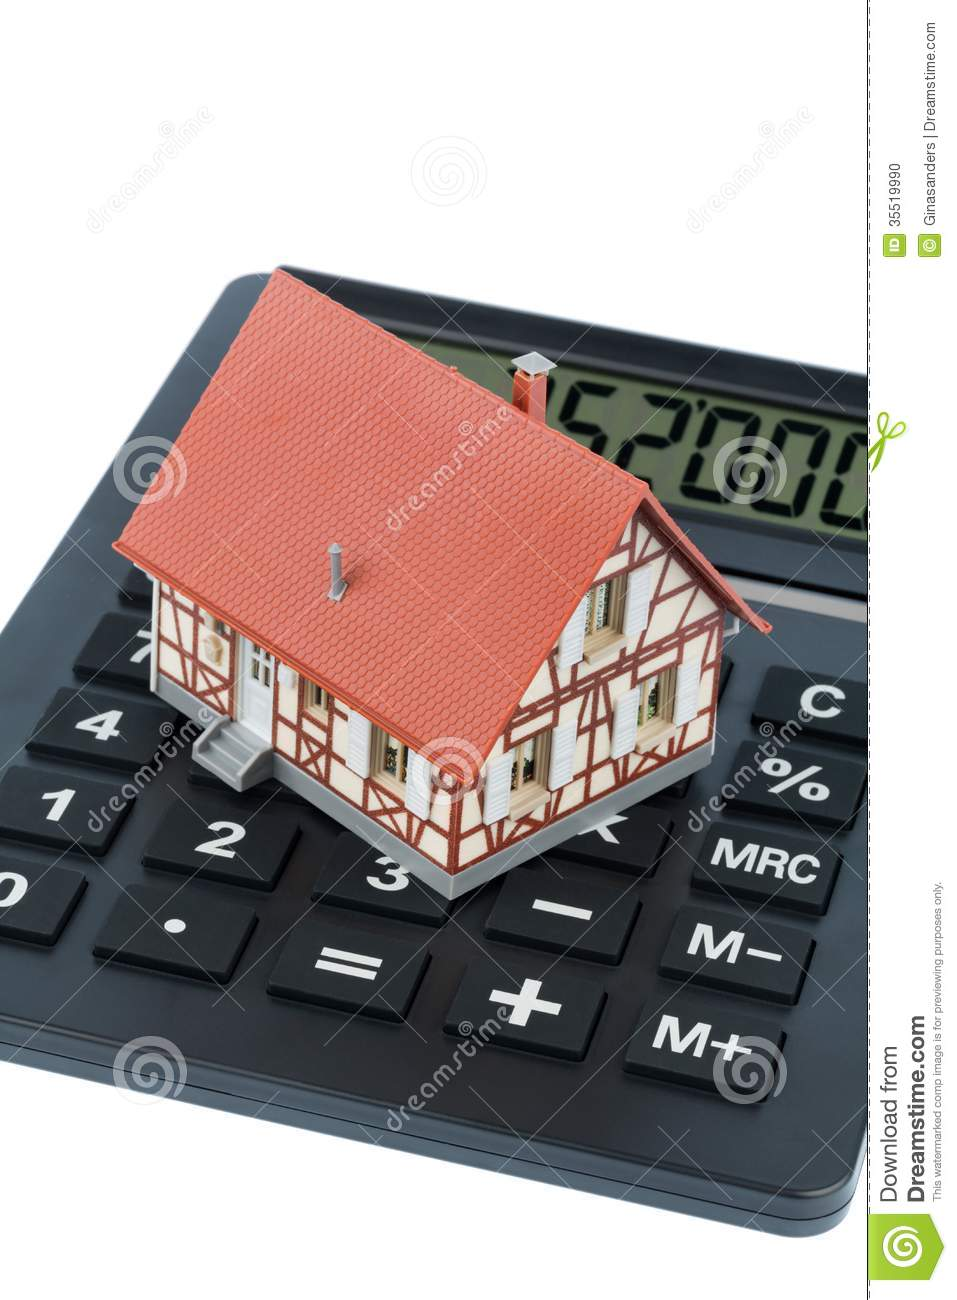 Residential house on calculator stock photo image 35519990 for House costing build calculator